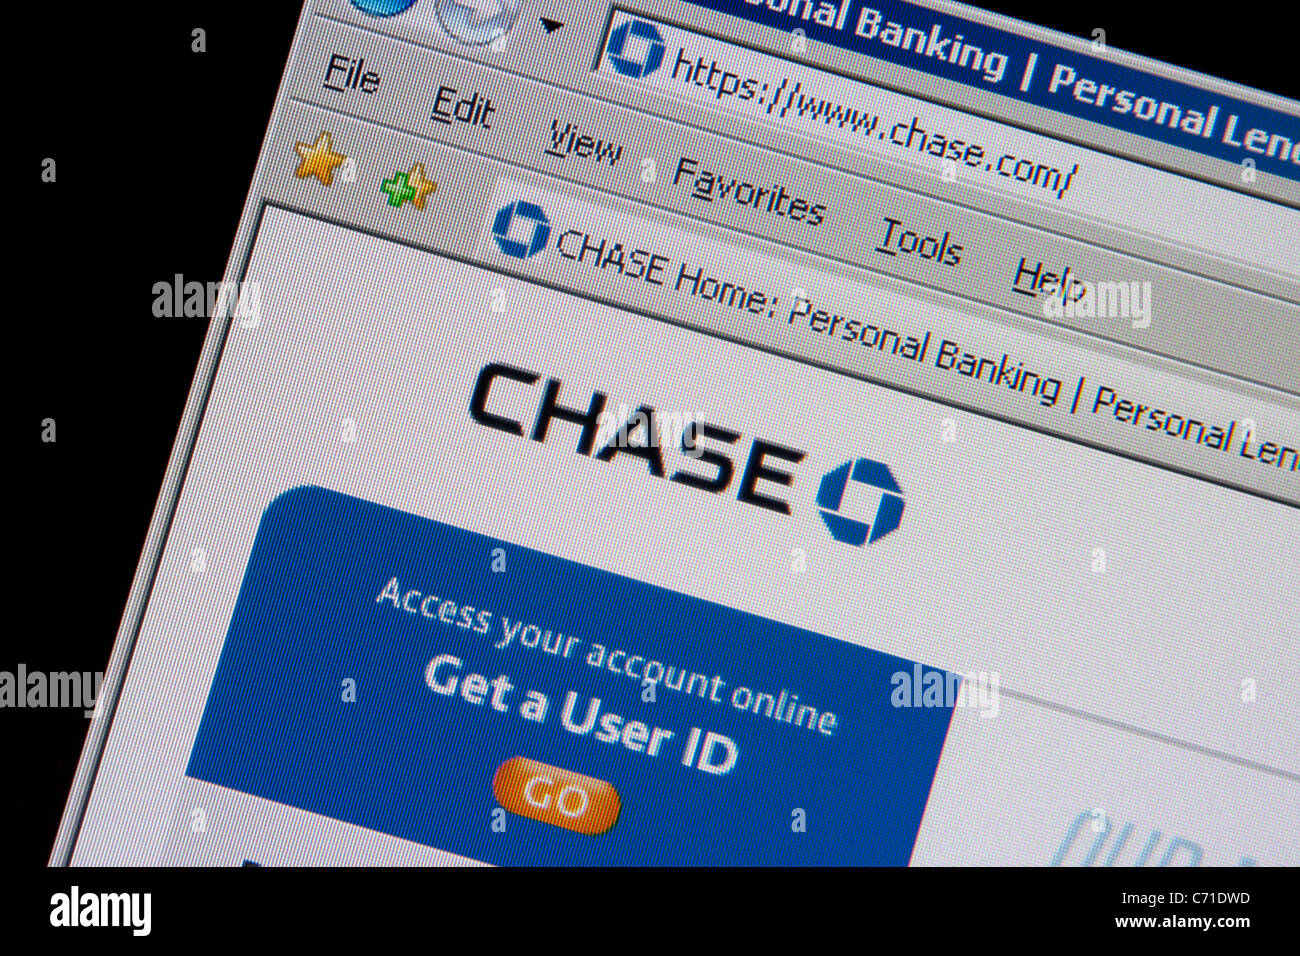 chase banking online - Stock Image